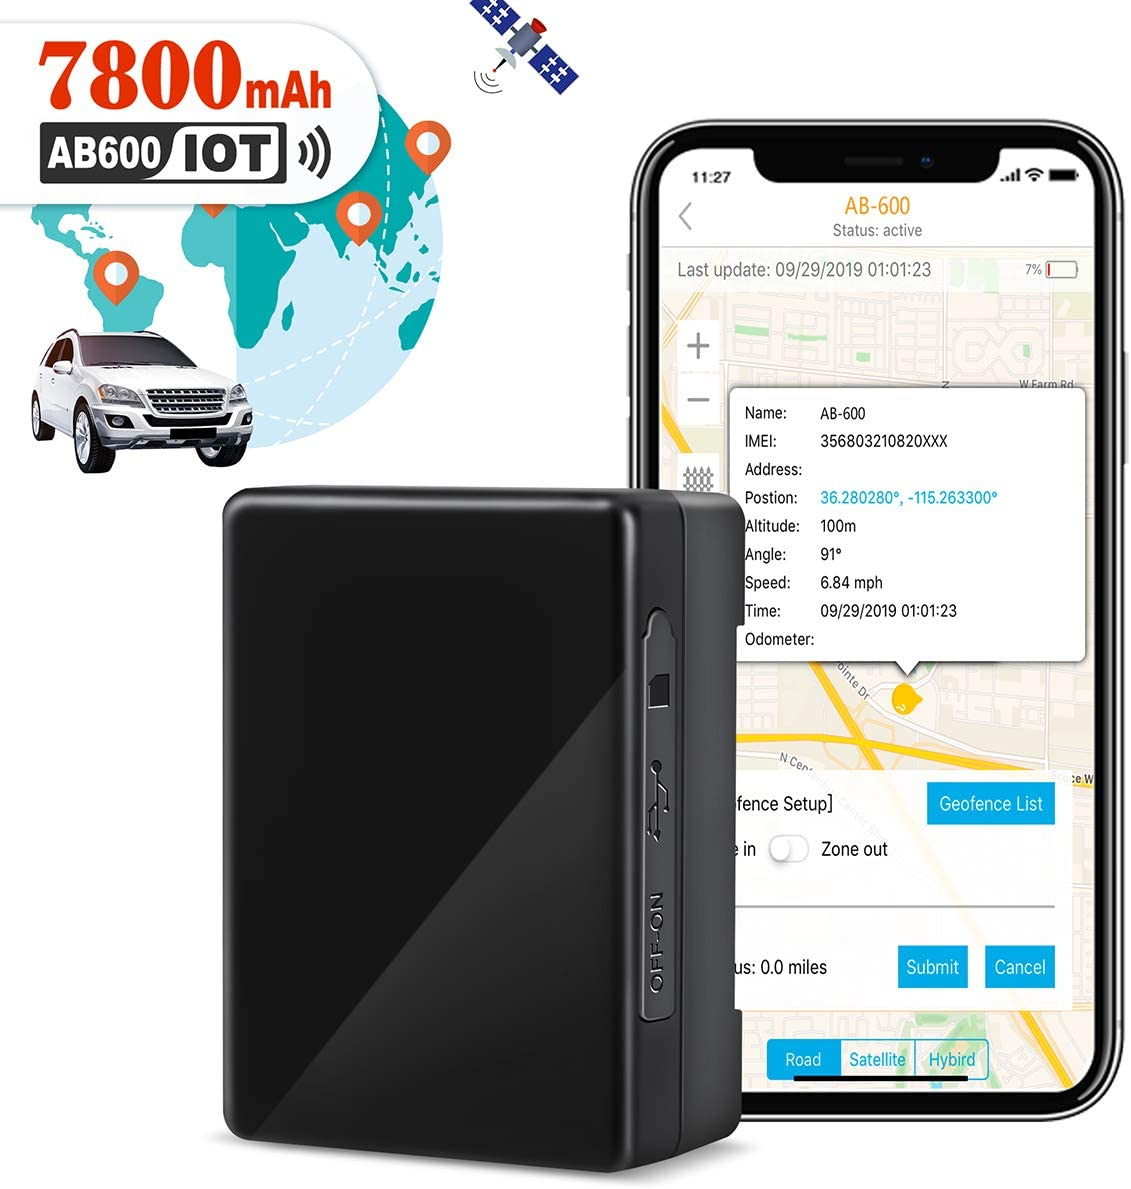 GPS Tracker for Vehicles, 7800mAh IoT Real-time GPS Tracking Device for Car NB-IoT Cat-M 4G Small Hidden GPS Locator for Vehicle, Car, Personal, Valuable – with Global SIM Card – 90 Days